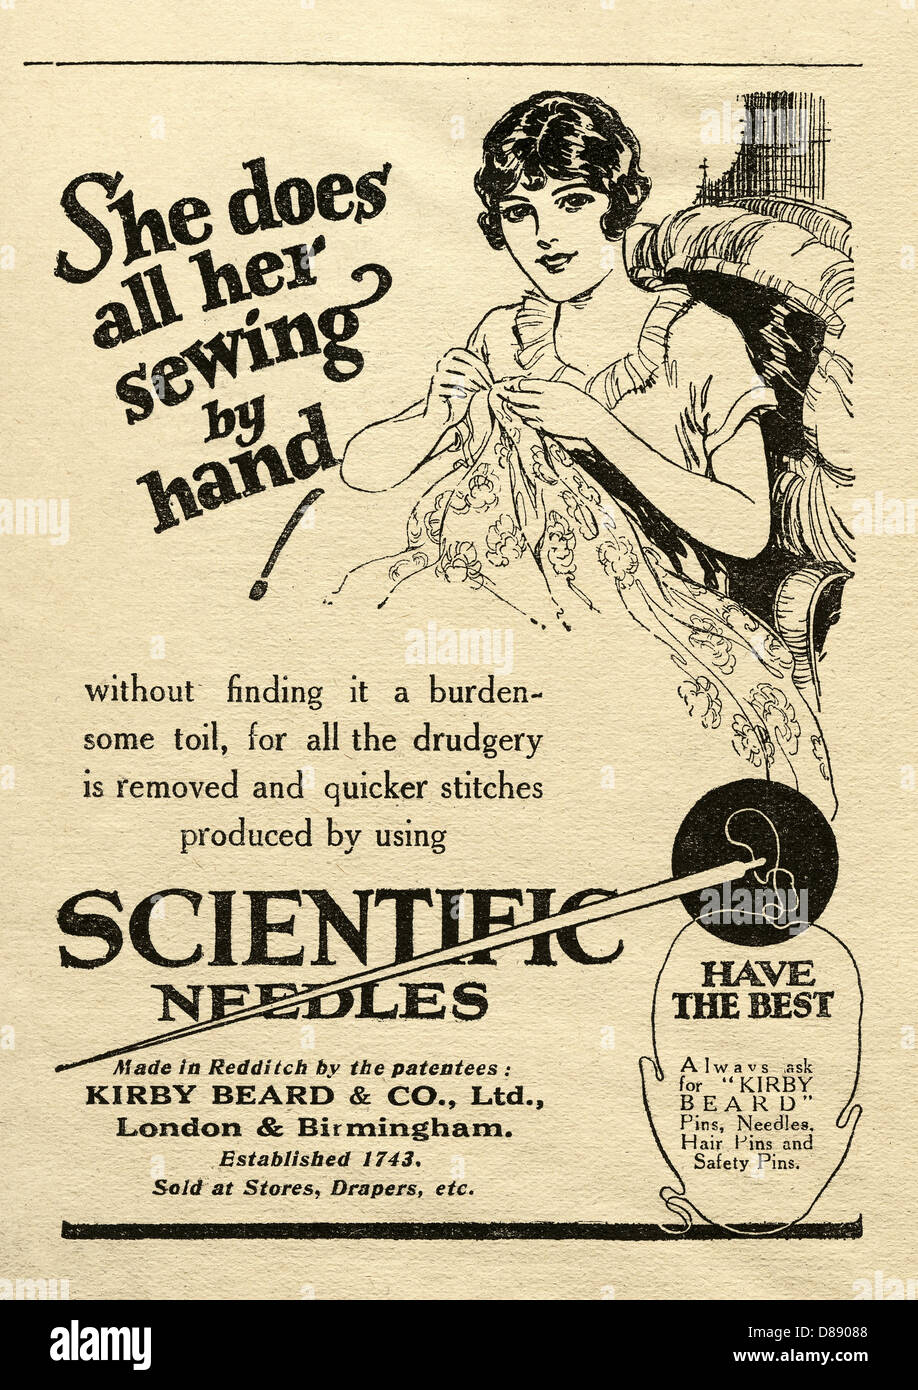 Advert for Scientific sewing needles - illustrated by a